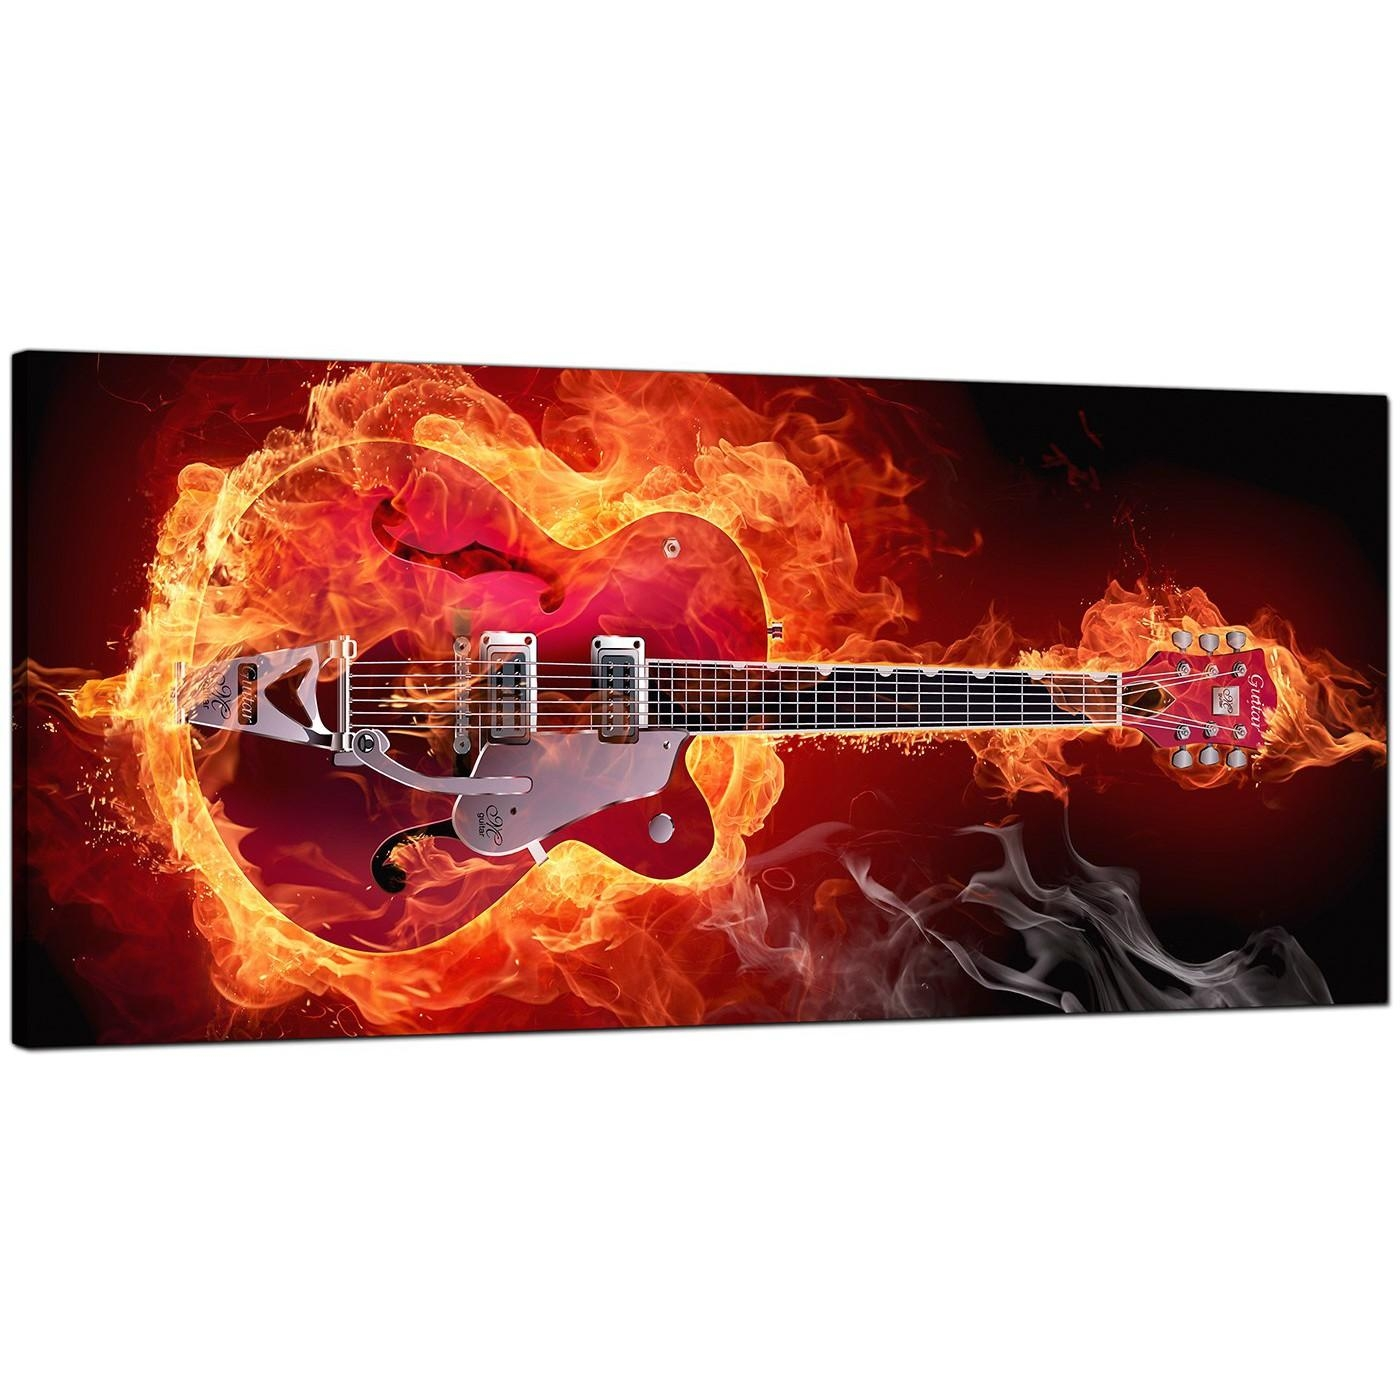 Large Orange Canvas Pictures Of An Electric Guitar On Fire Pertaining To Guitar Canvas Wall Art (View 5 of 20)